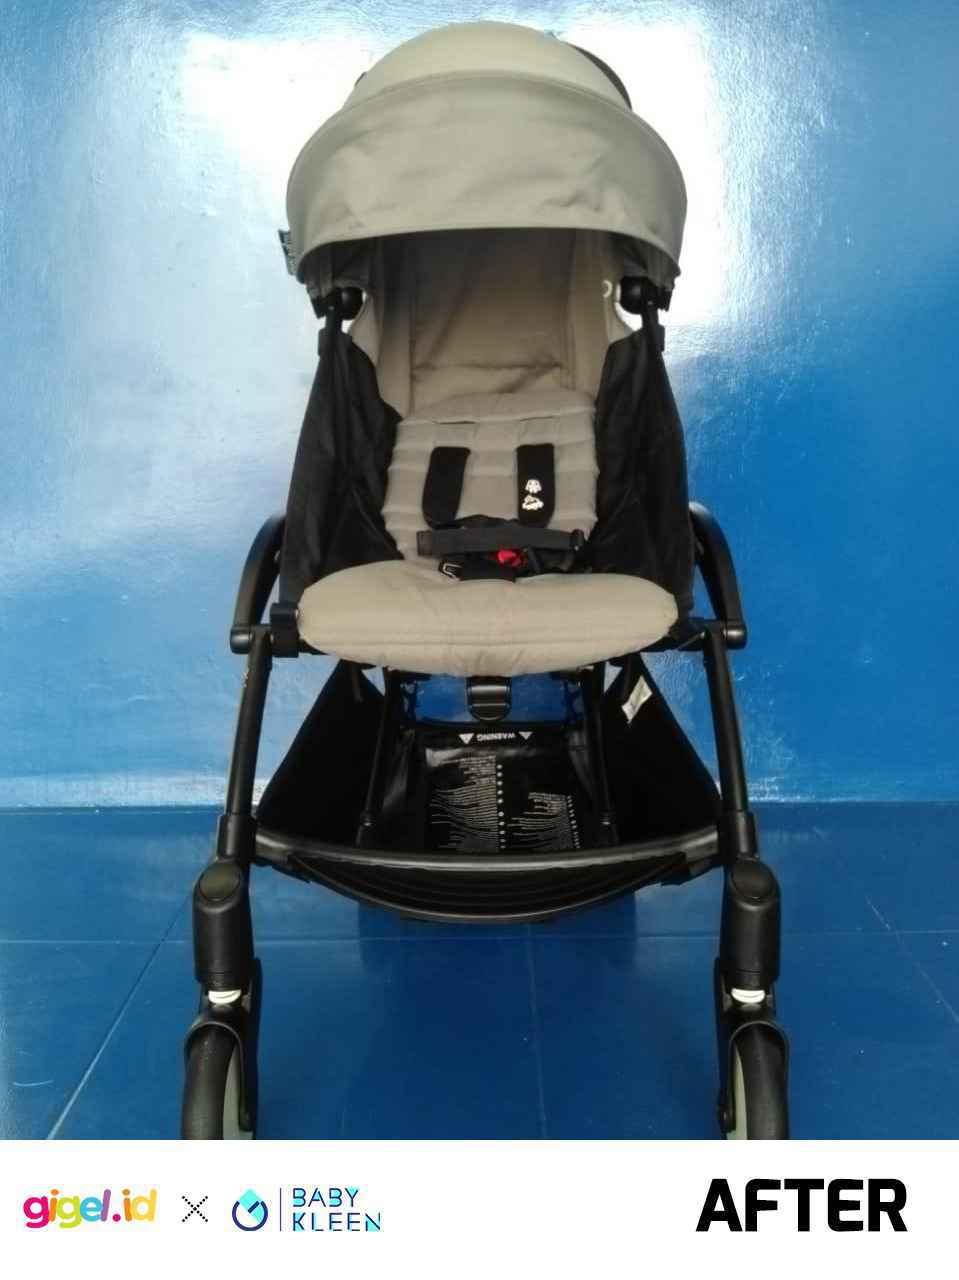 GIGEL.ID x Baby Kleen Laundry Stroller  Double - 3